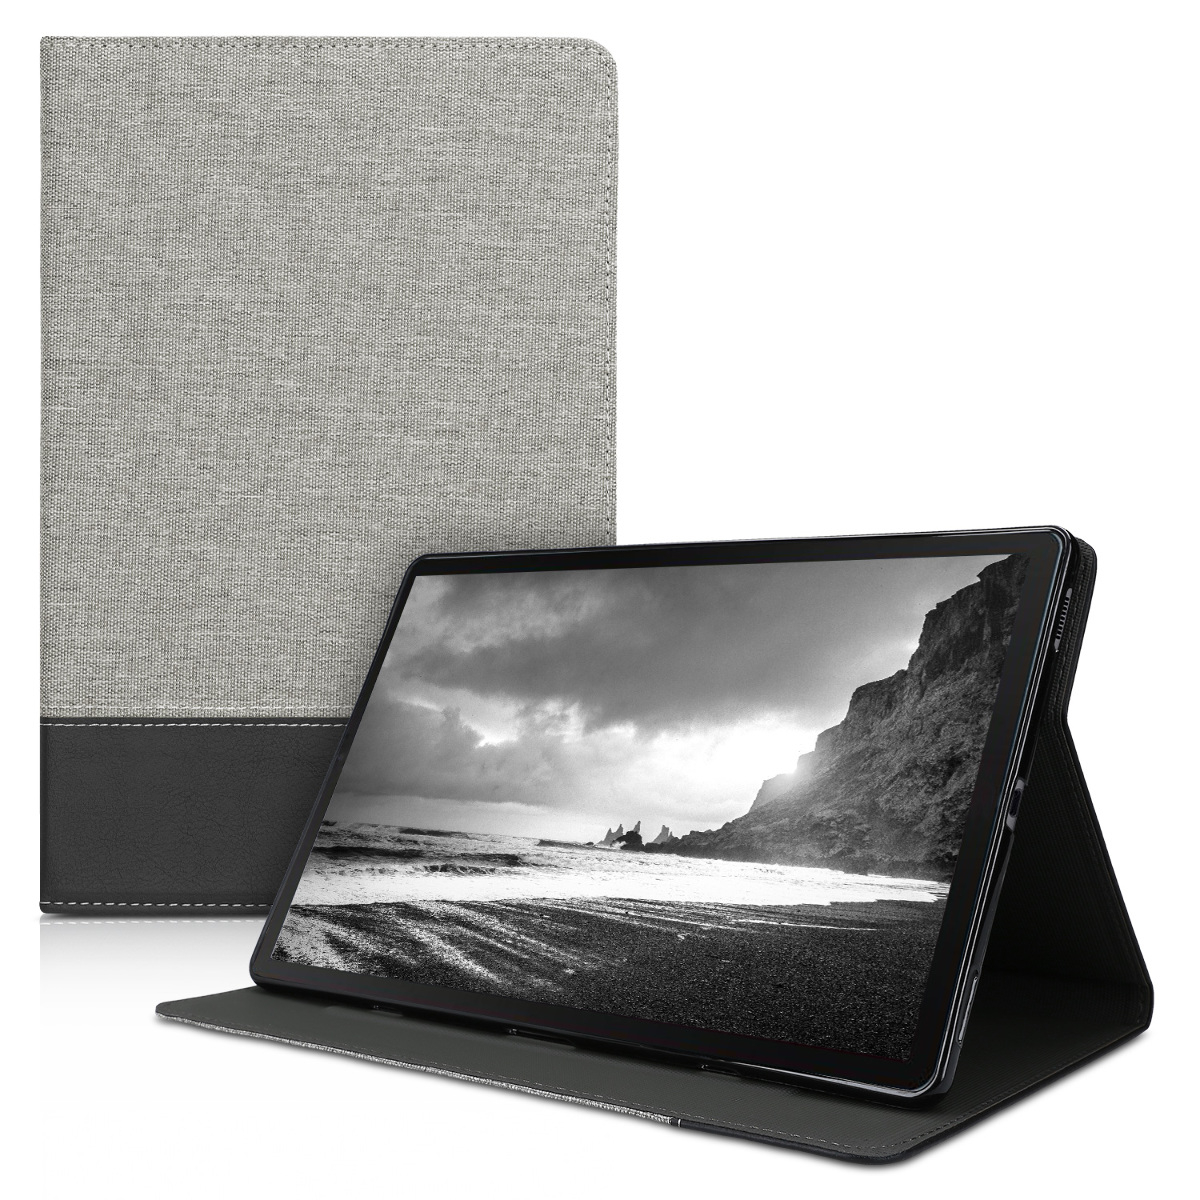 KW Θήκη Samsung Galaxy Tab S6 - Protective Cover with Stand Feature - Grey / Black (49934.01)